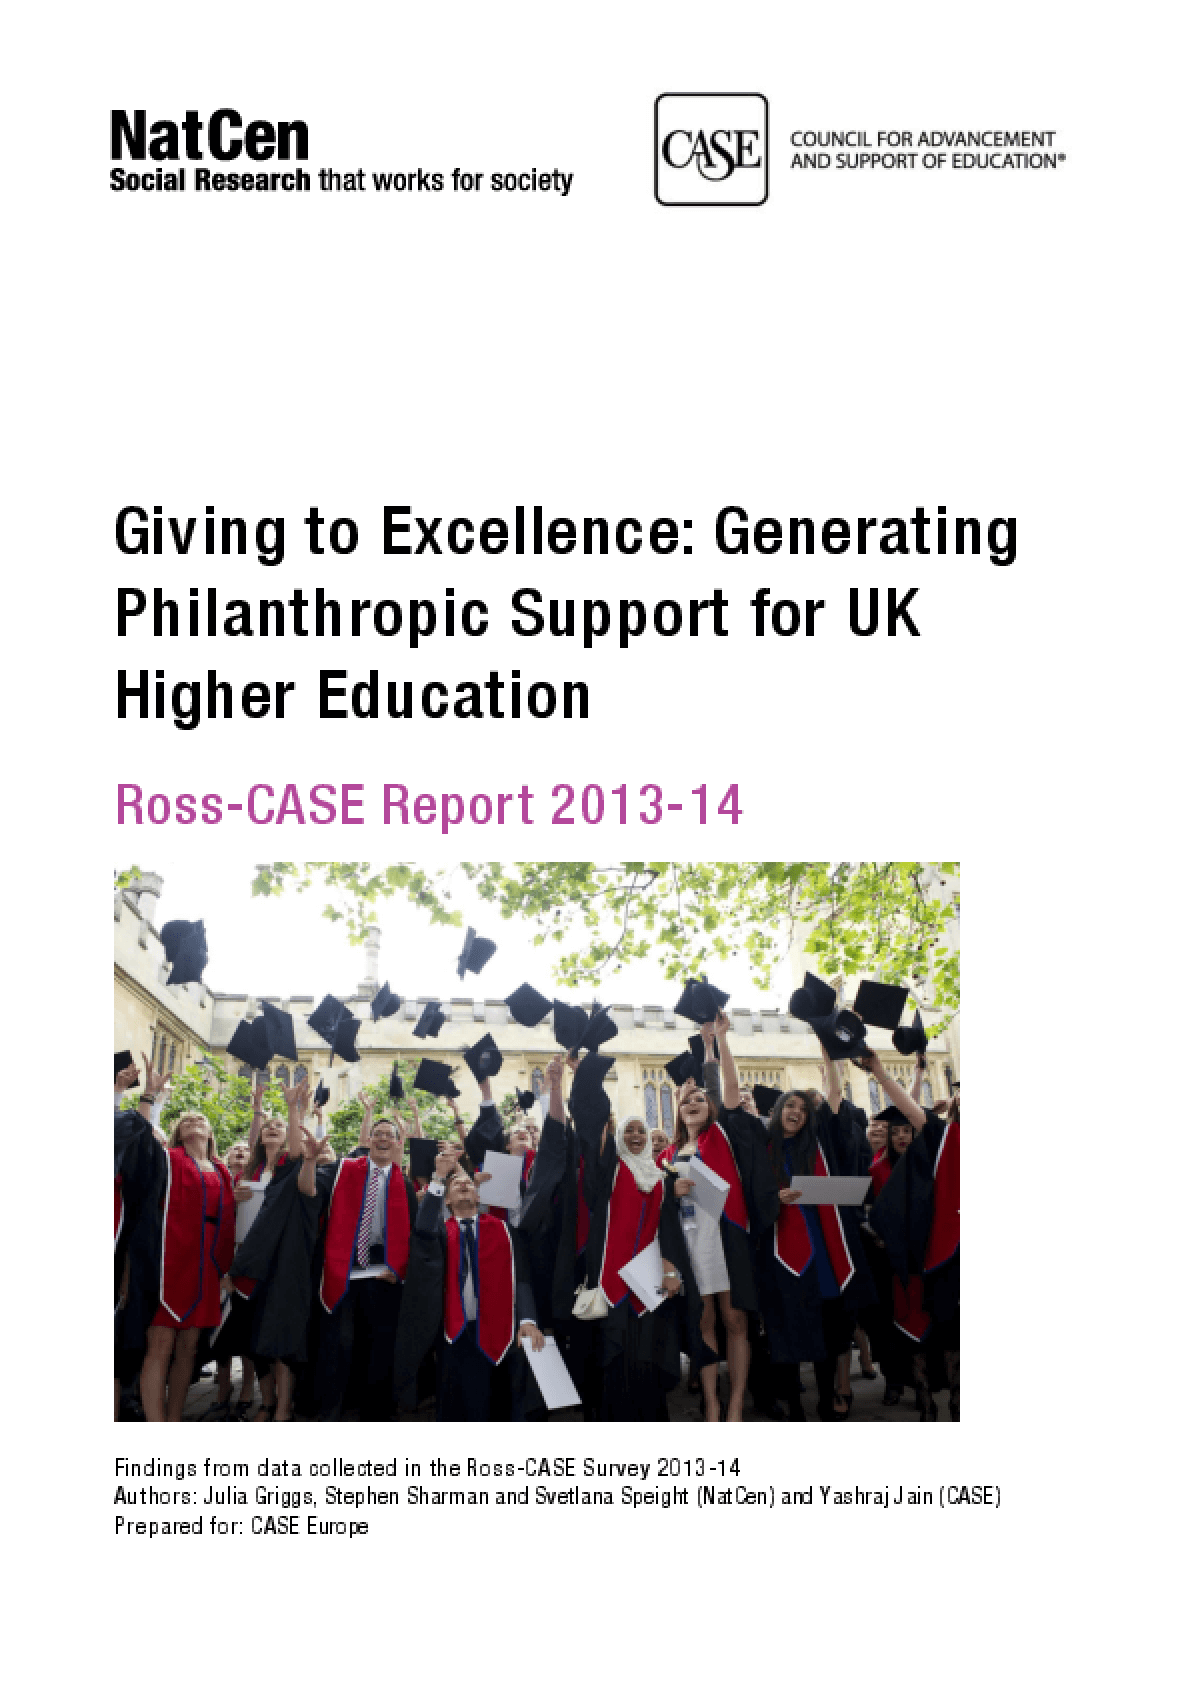 Giving to Excellence: Generating Philanthropic Support for UK Higher Education